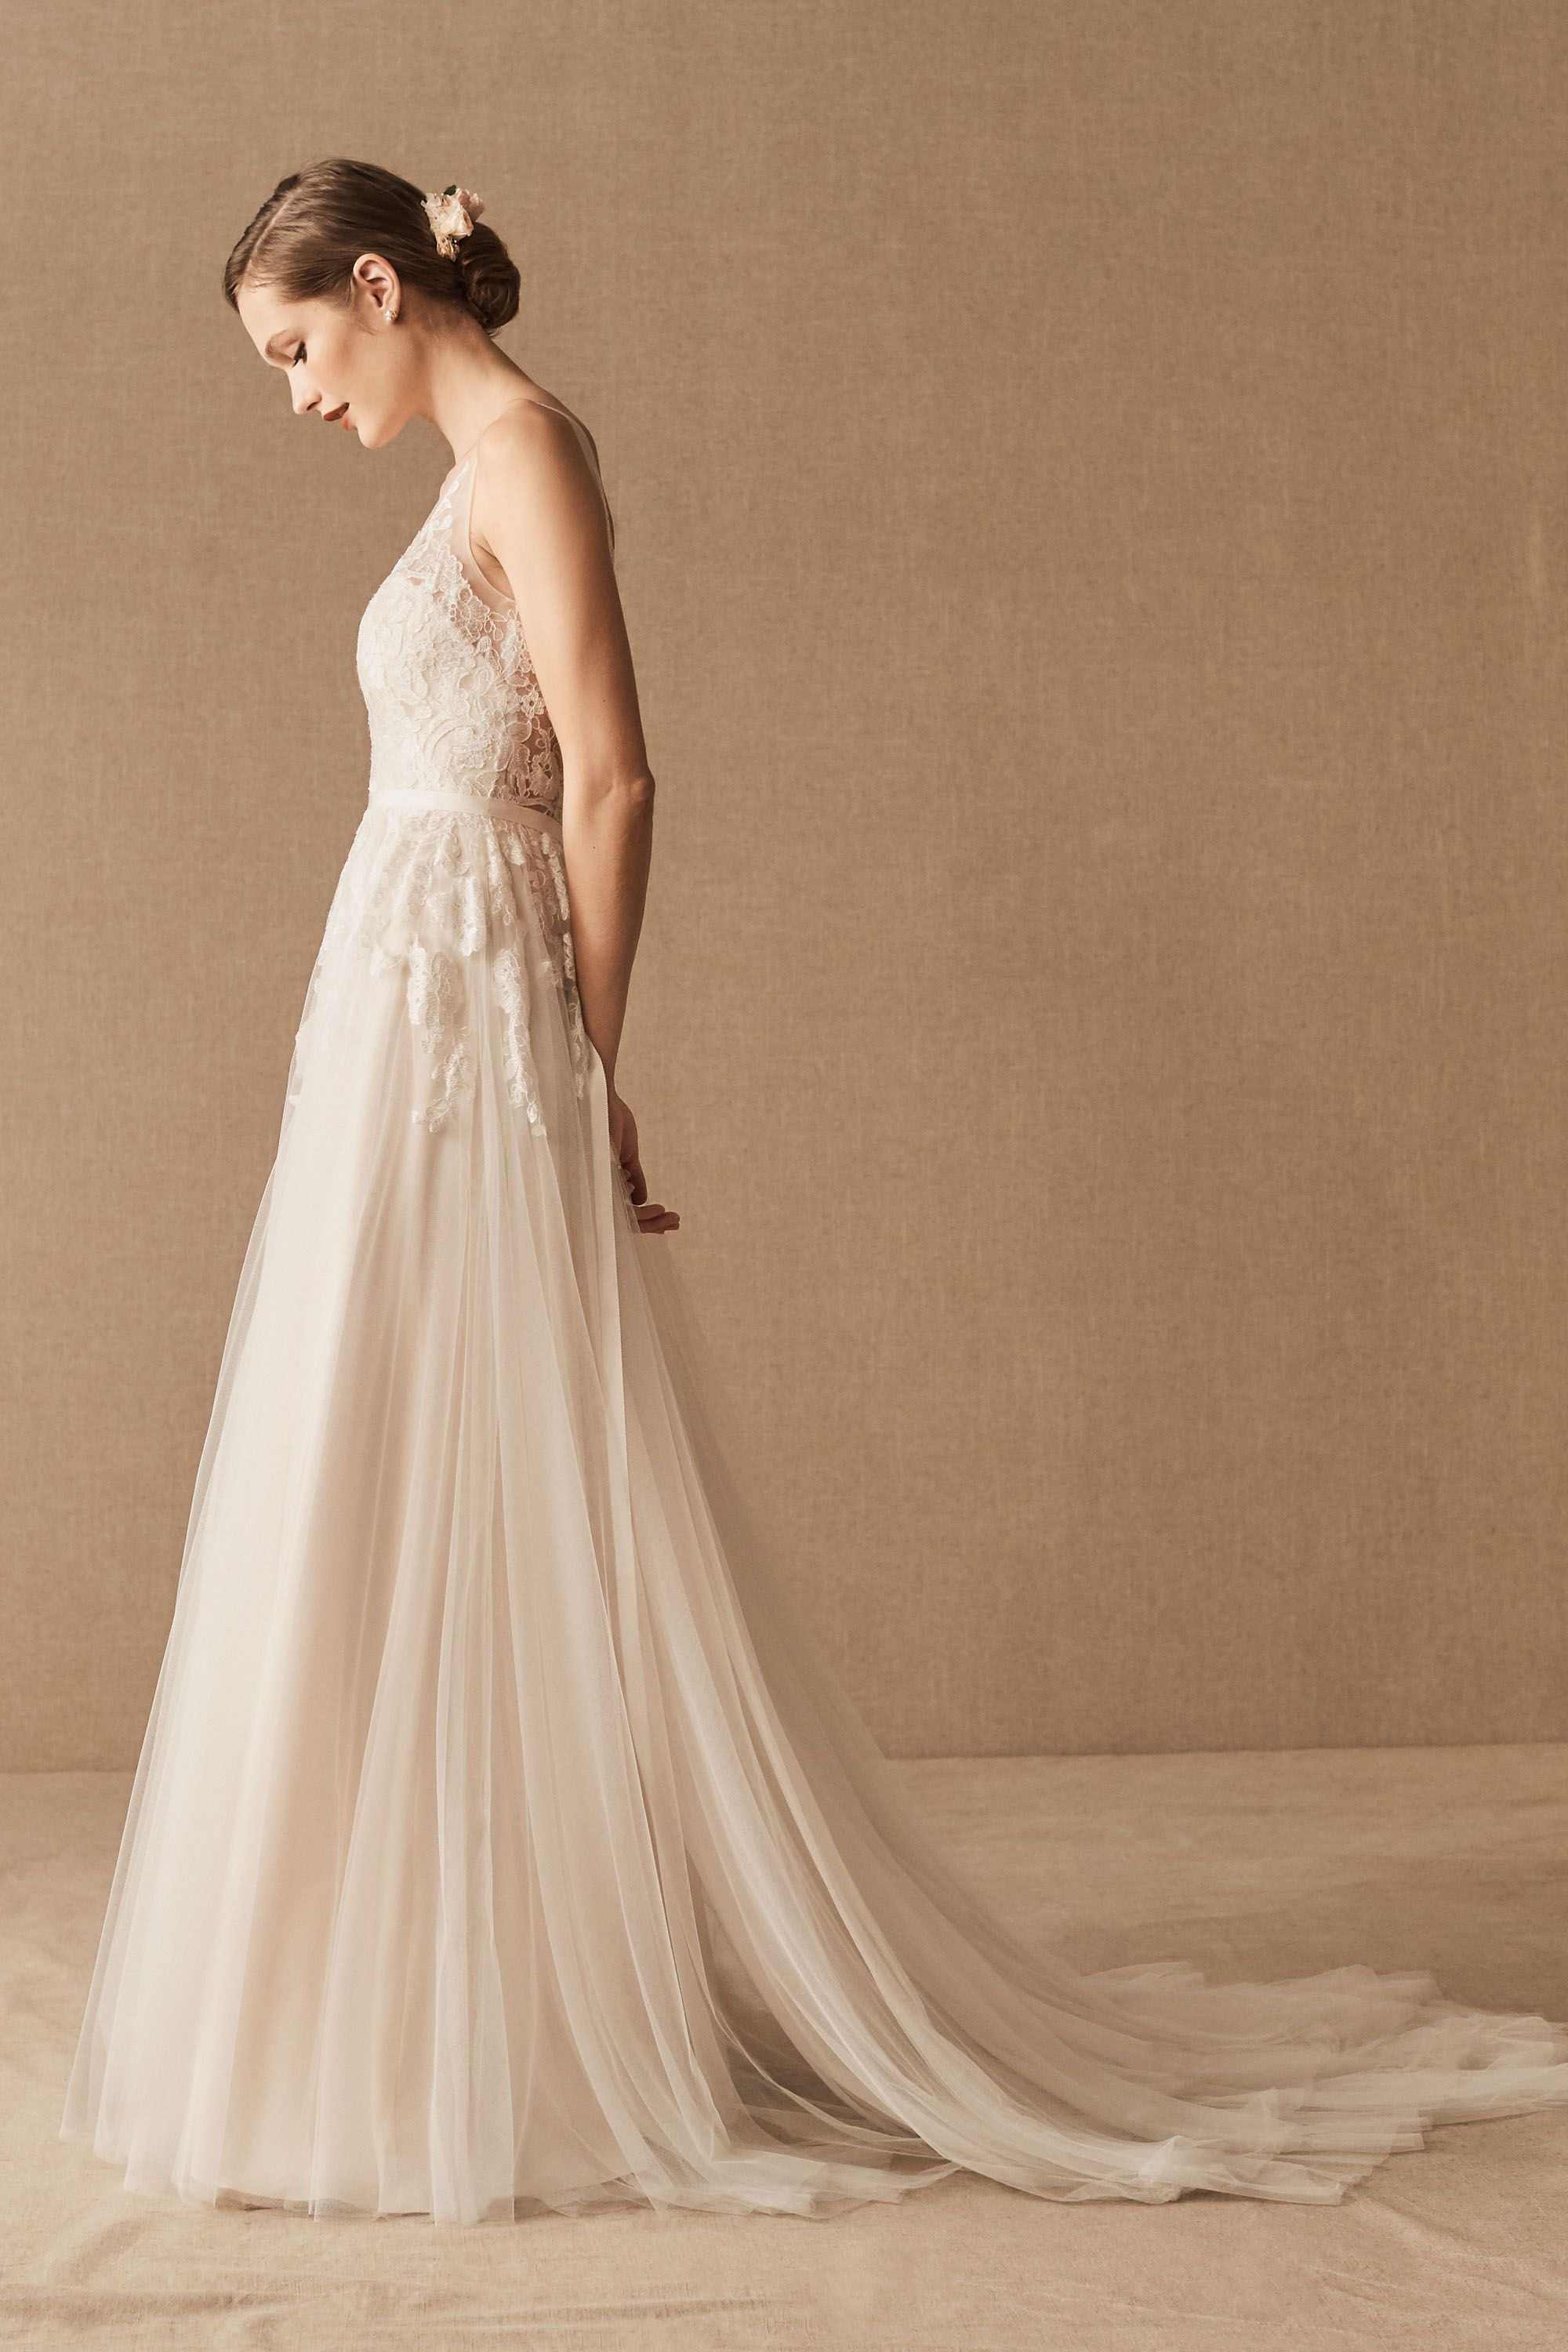 Where To Buy Bhldn Wedding Dresses In Store  Online. Wedding Dresses With Chiffon Top. Cheap Wedding Dresses Norfolk. Rustic Wedding Bridesmaid Dresses. Royal Blue Wedding Dresses Plus Size. Kaleidoscope Wedding Guest Dresses. Boho Wedding Dress Hertfordshire. Unique Wedding Dresses San Francisco. Modest Wedding Dresses Utah County